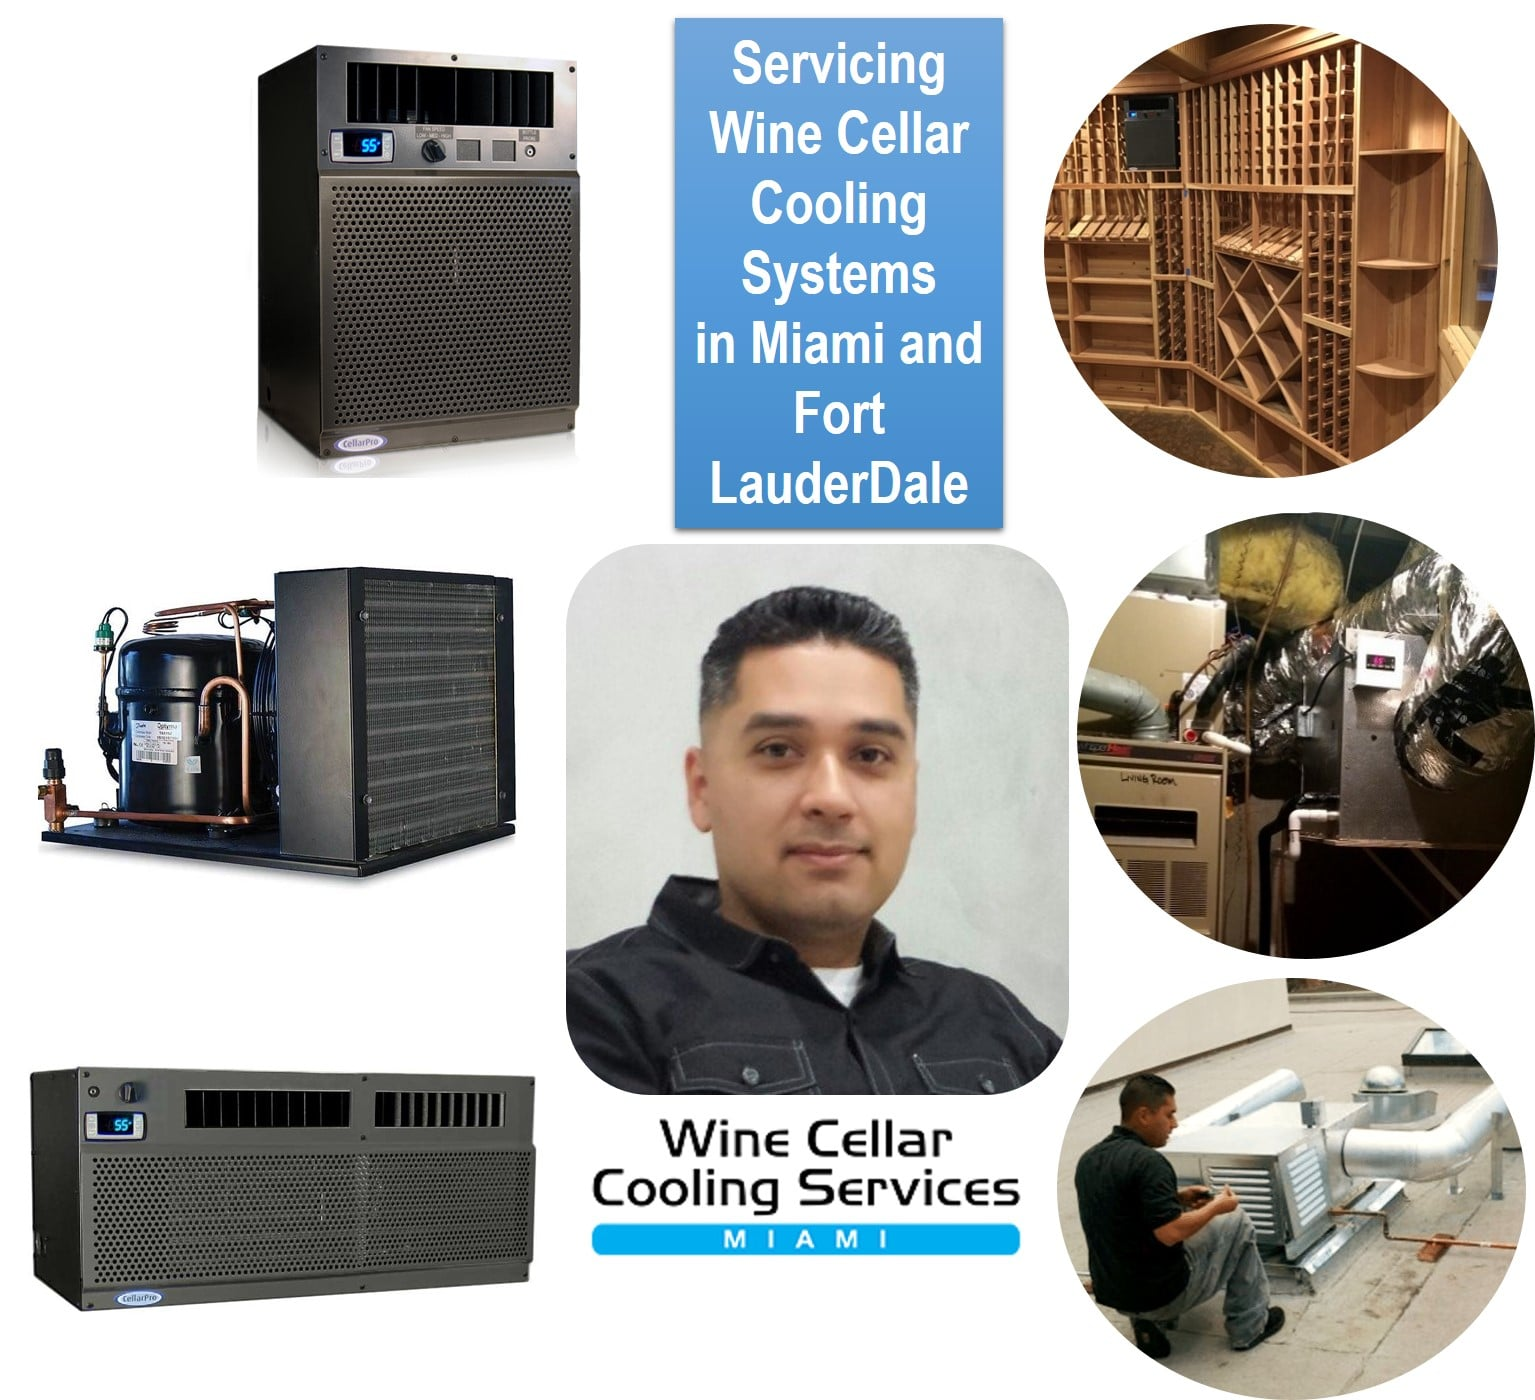 Wine Cellar Refrigeration System Repair Experts Servicing Miami and Fort Lauderdale